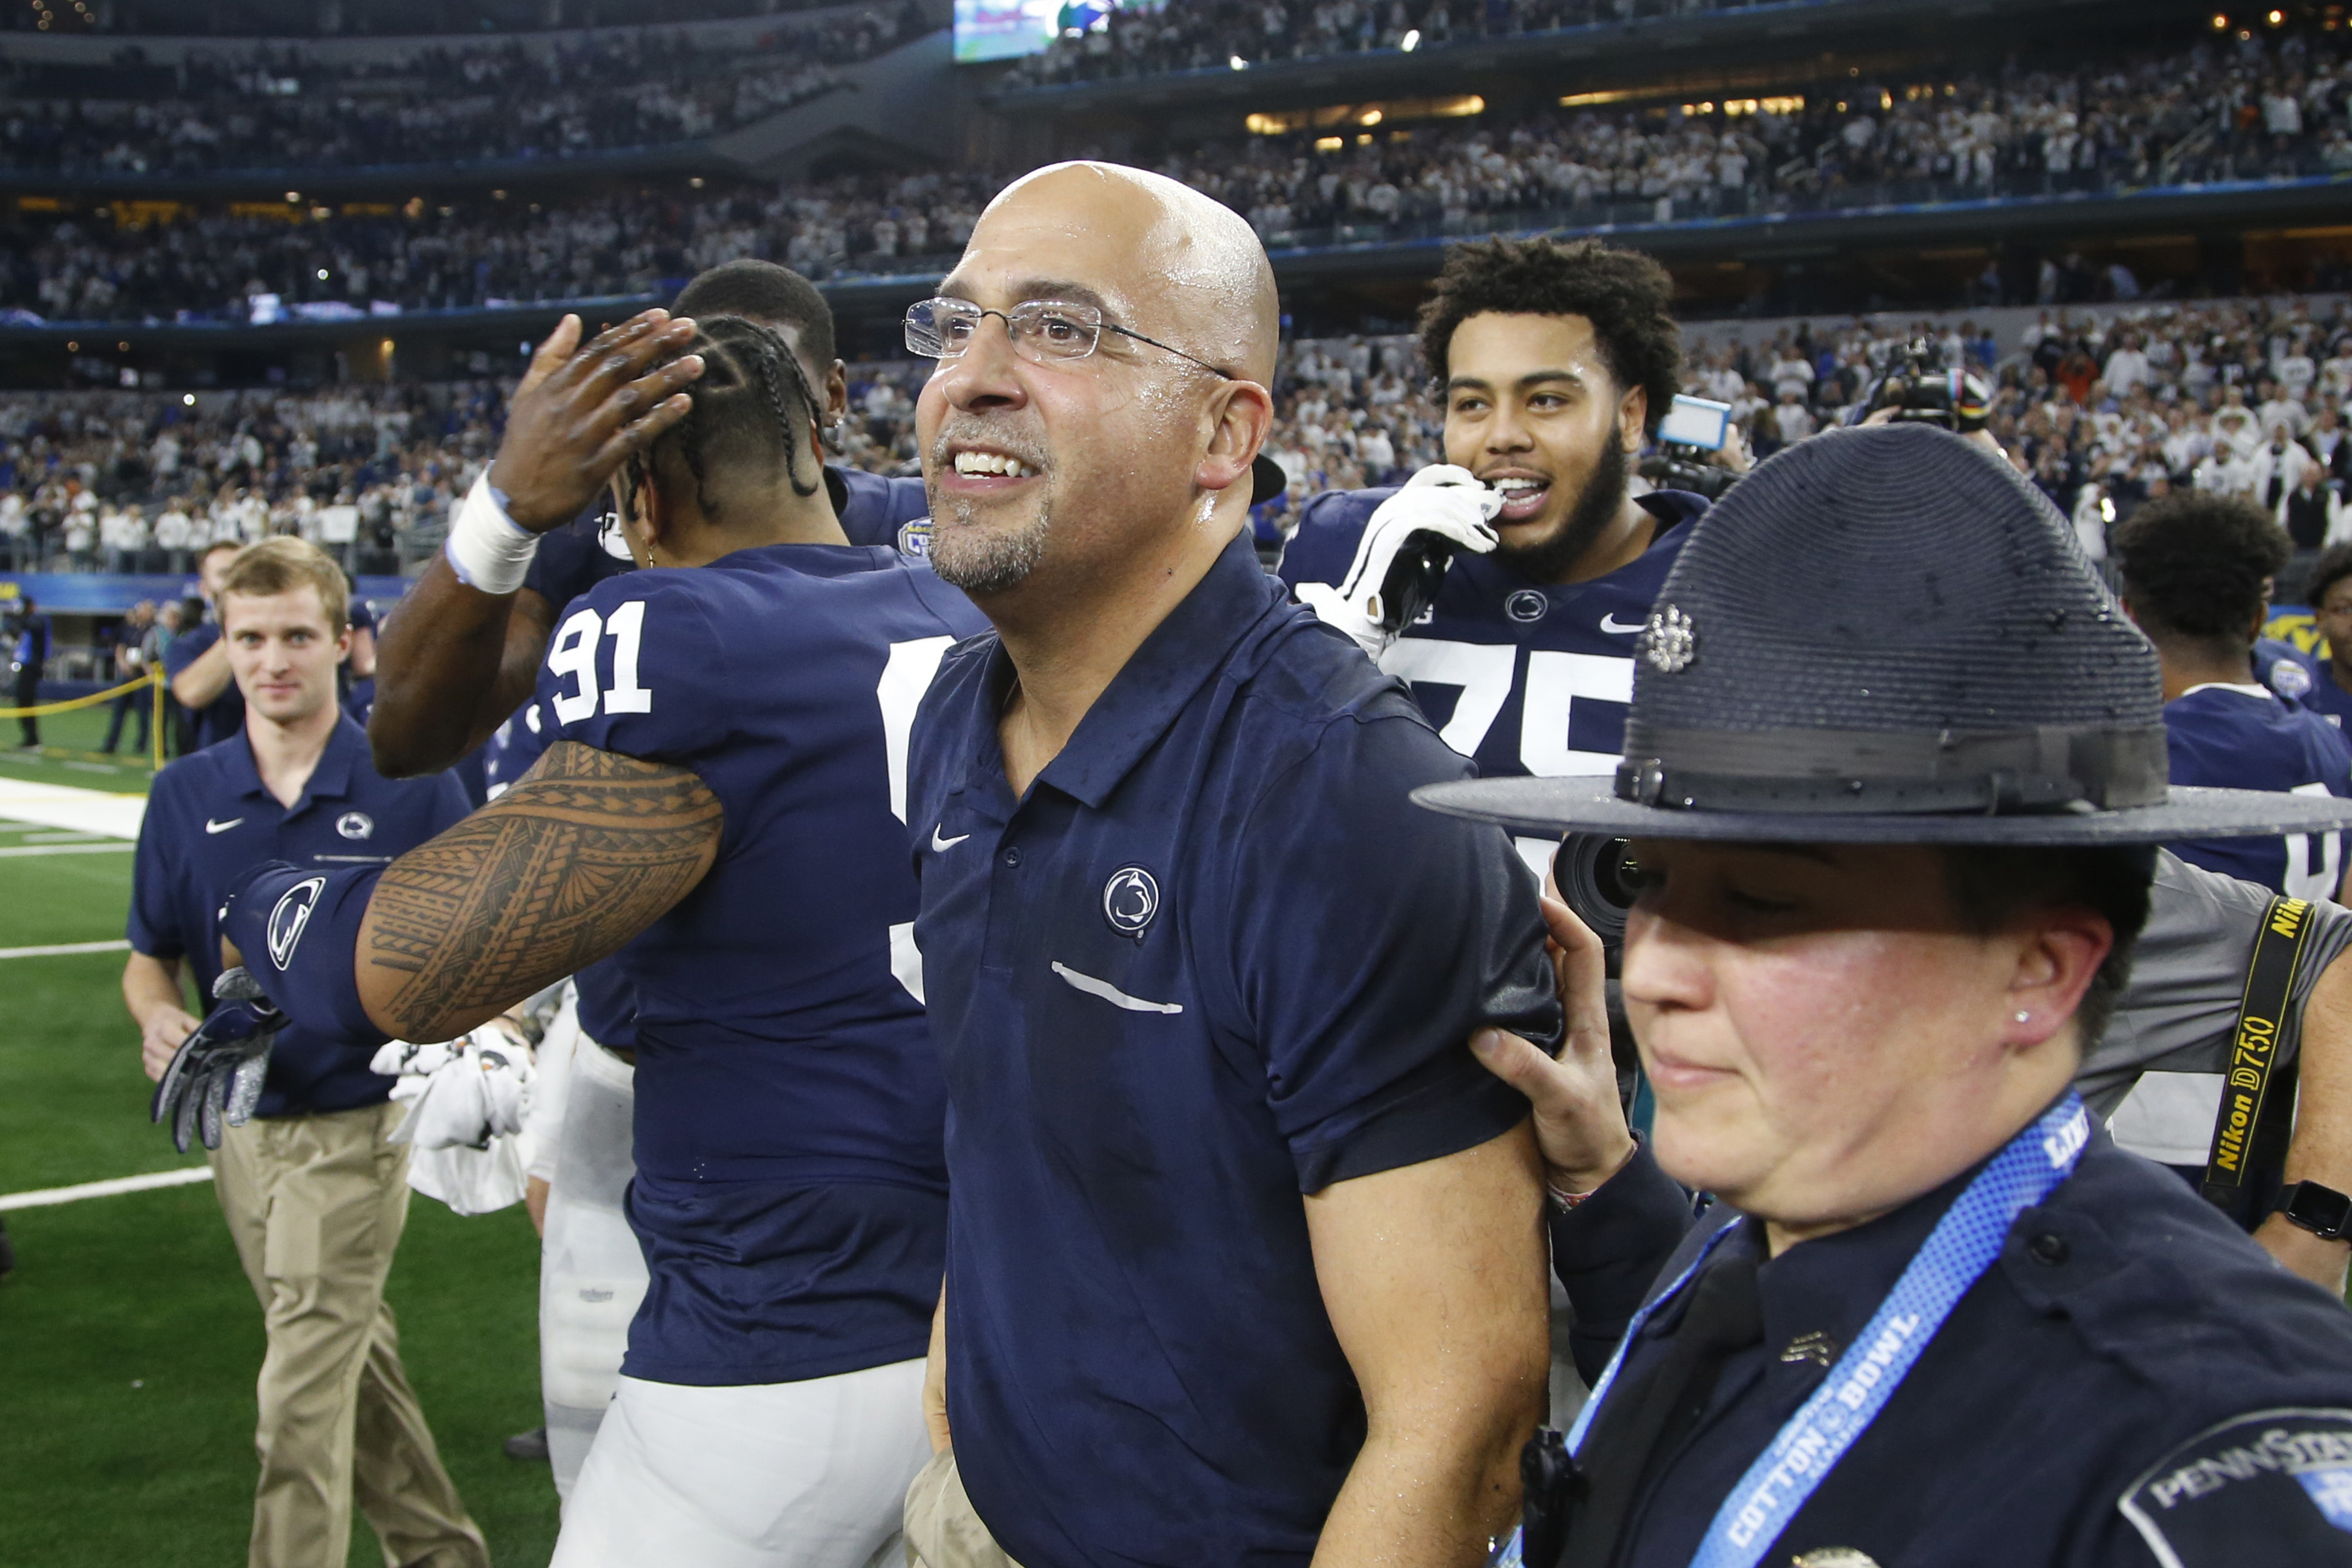 Allegations Of Hazing Arise Against James Franklin, Penn State In Lawsuit